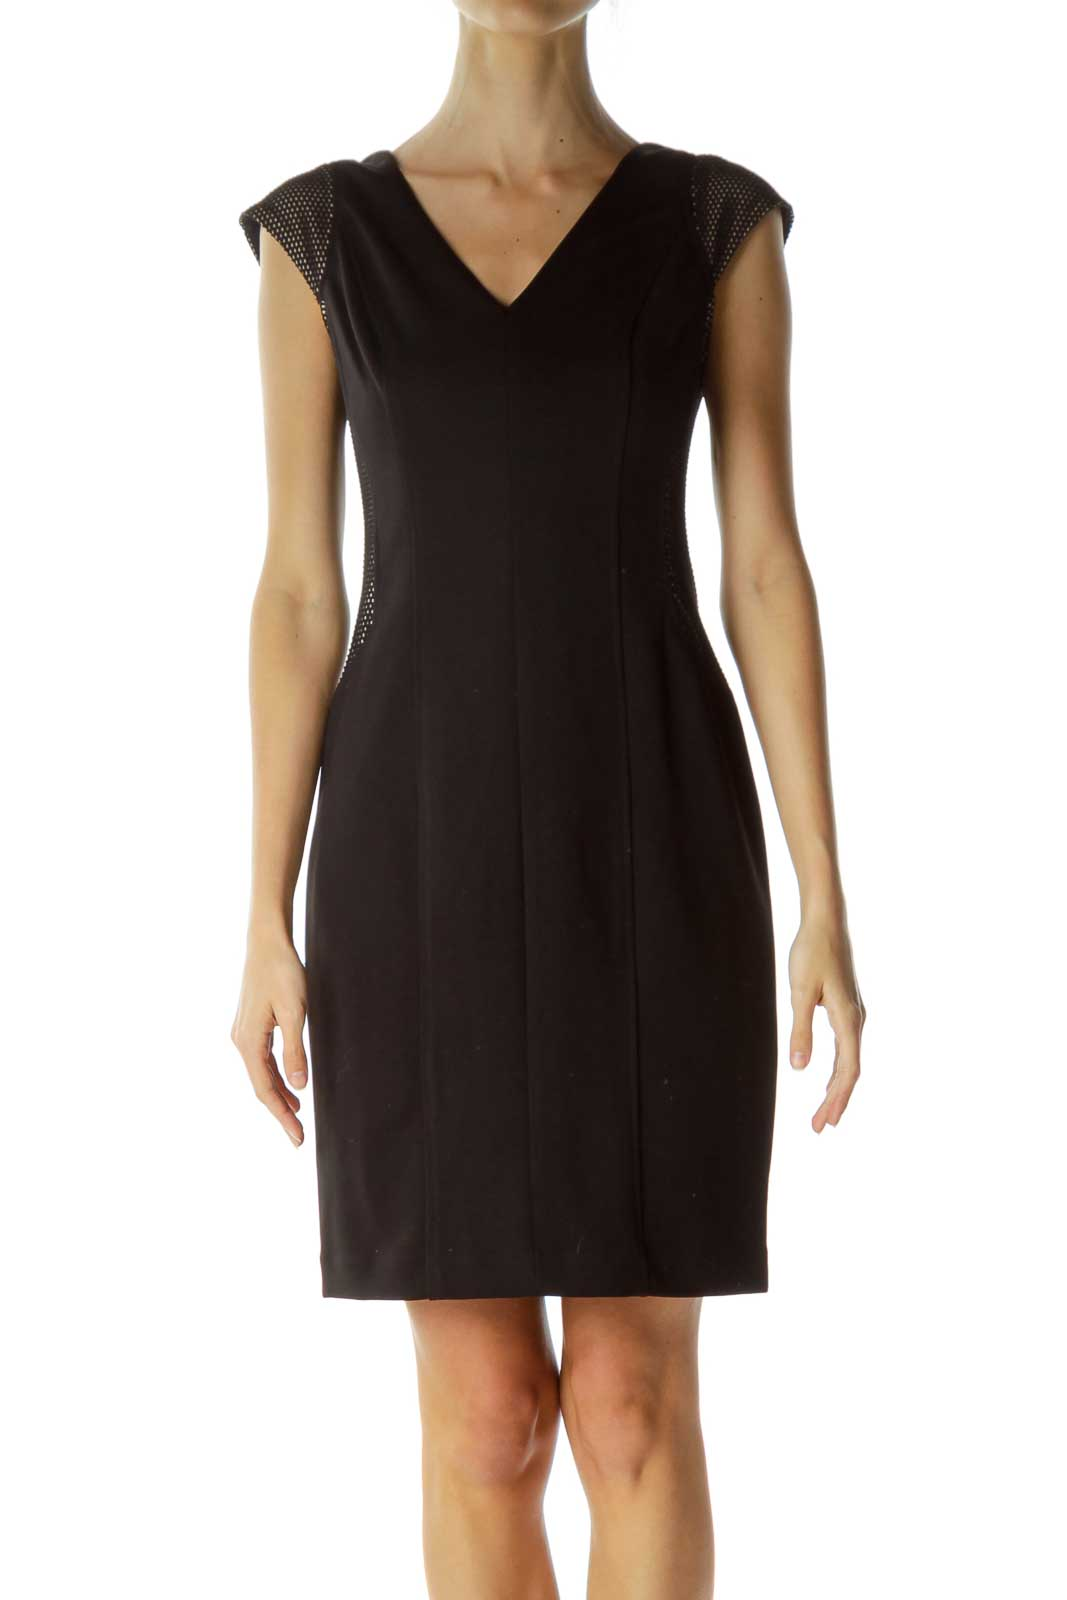 Black V-Neck Side Textured Work Dress